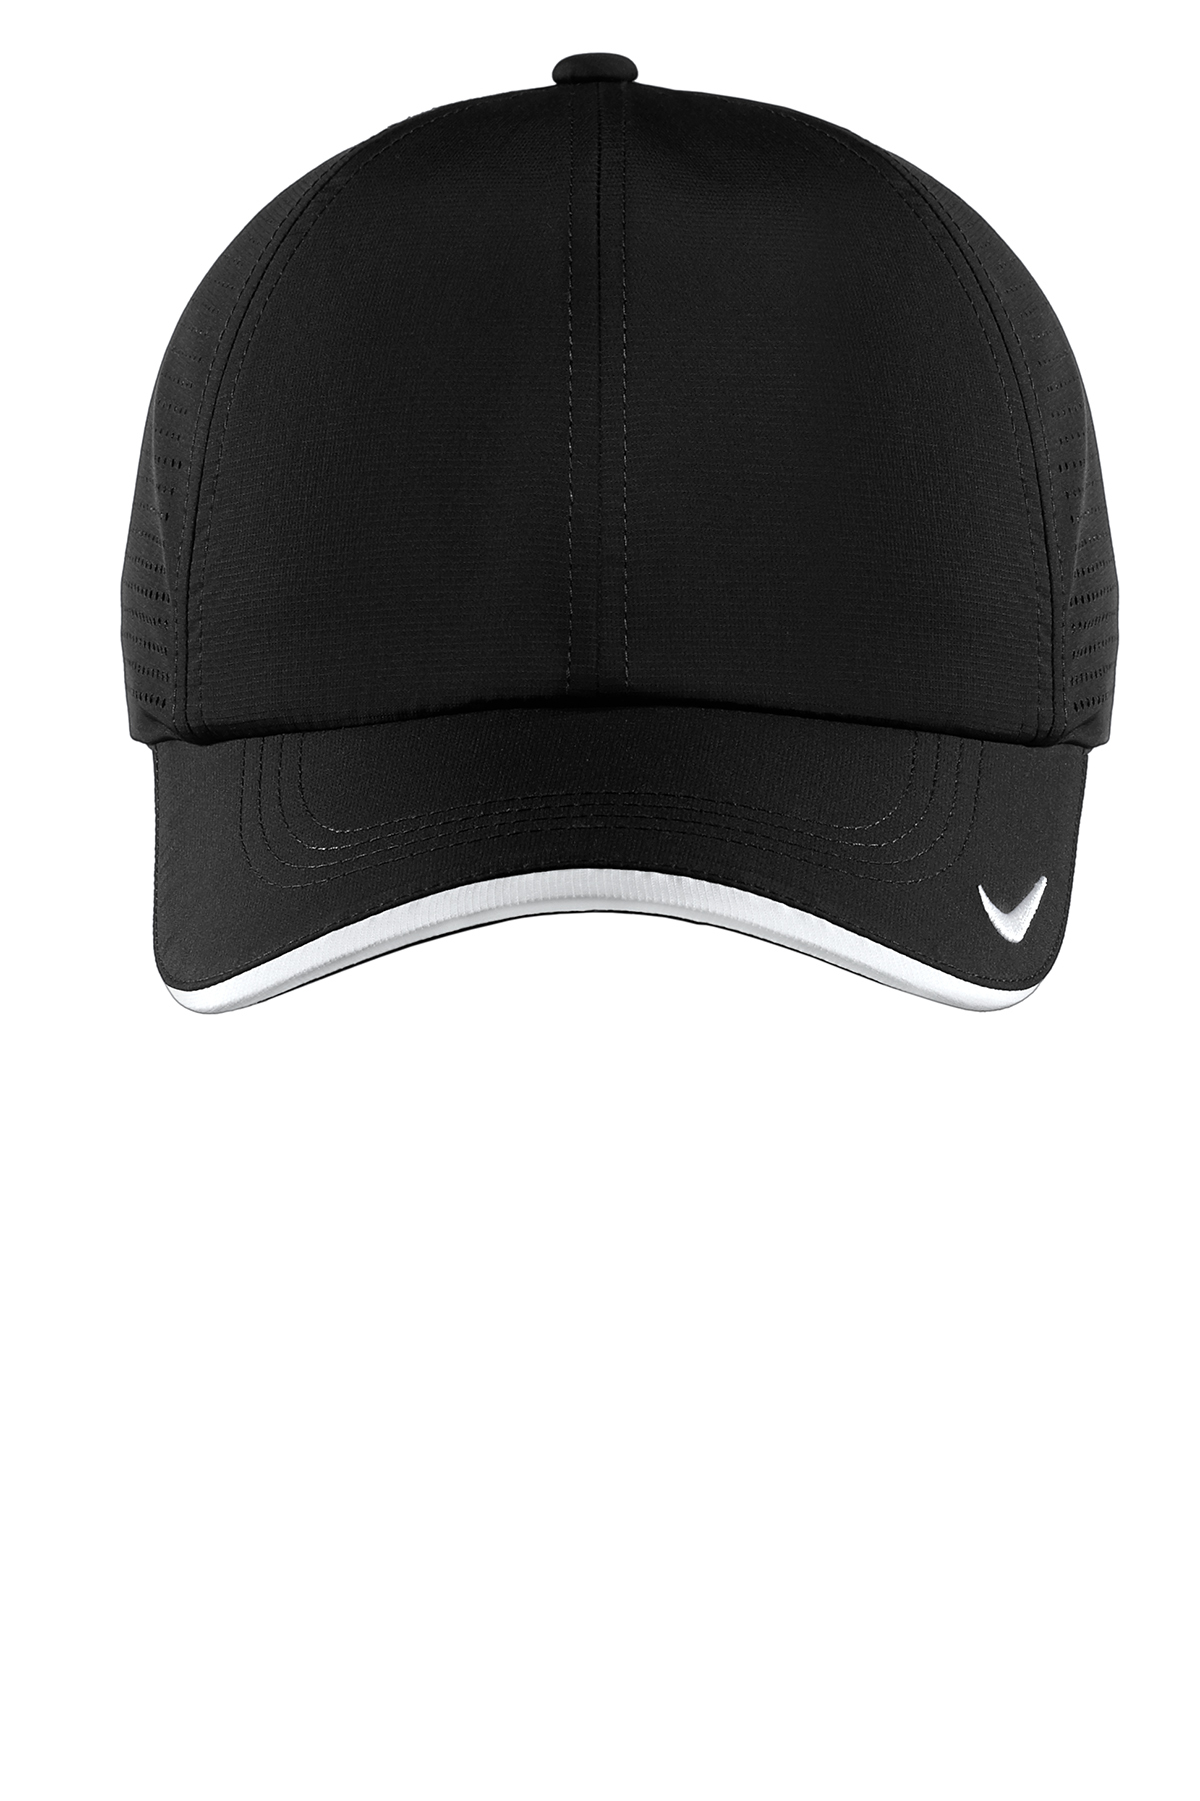 2397fdbdf5a22 Nike Dri-FIT Swoosh Perforated Cap